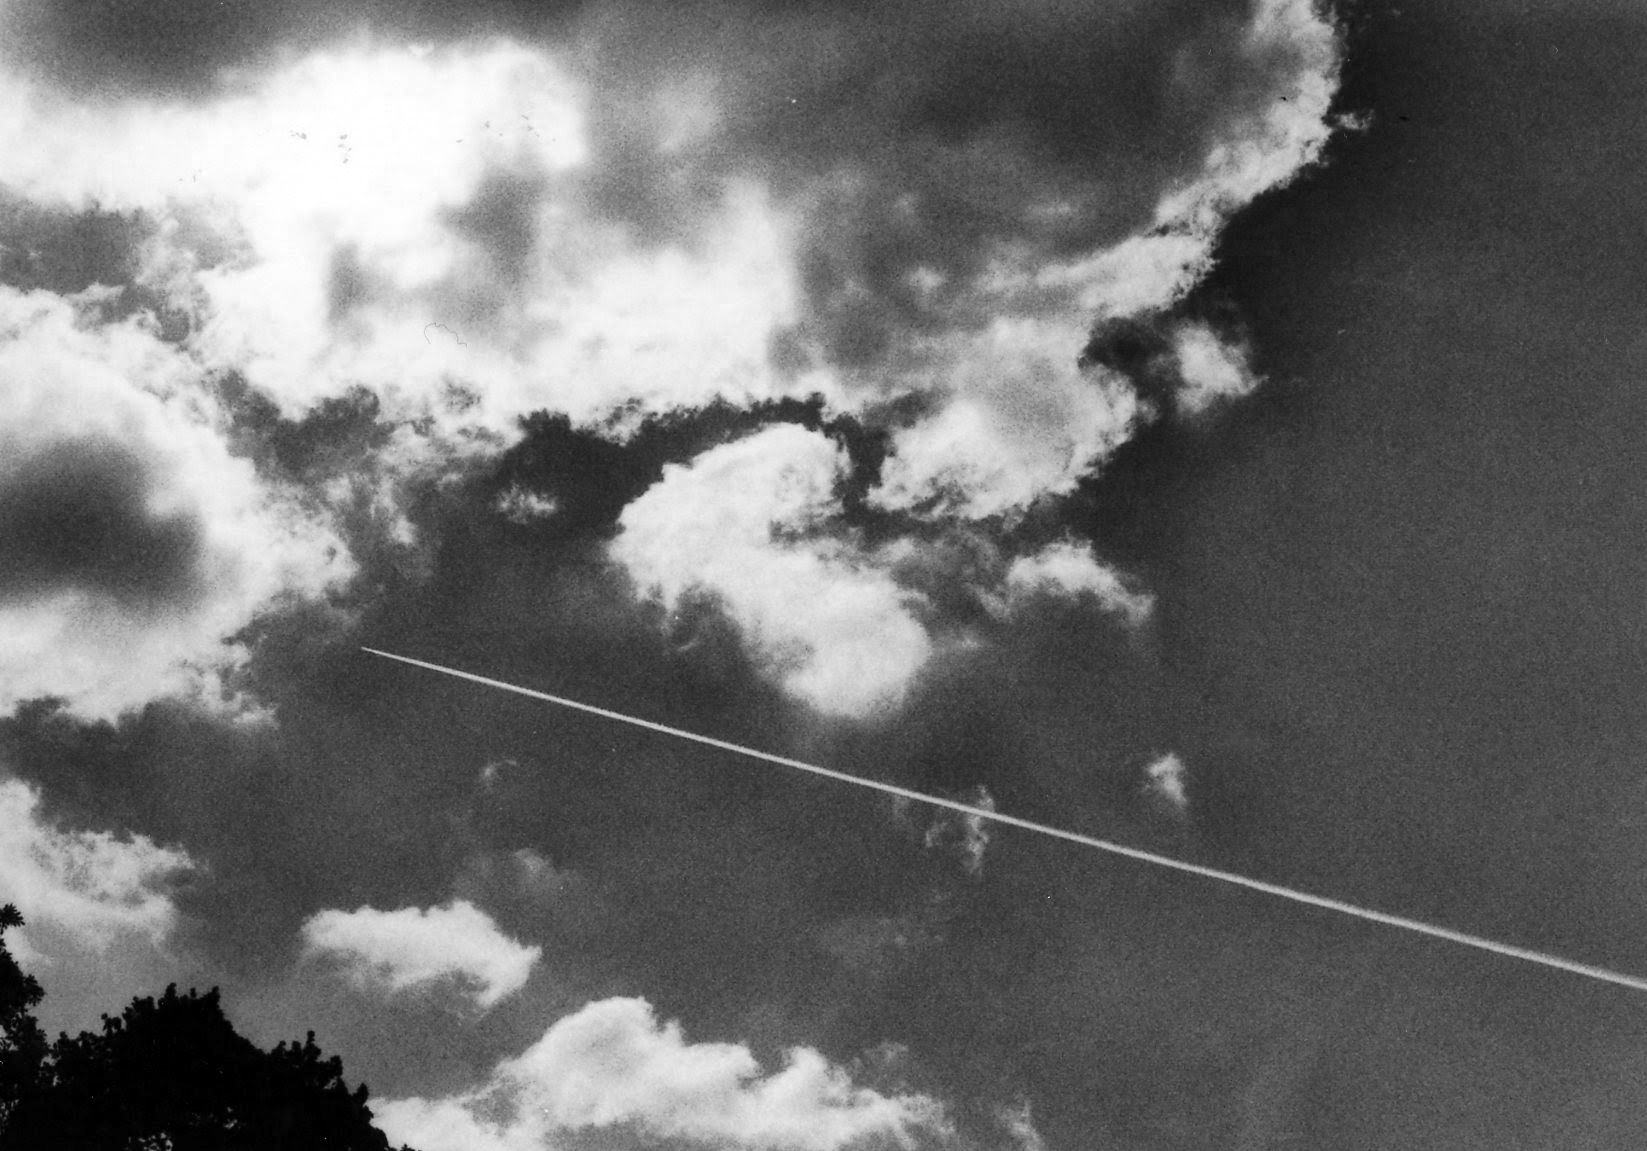 Sky. Condensation trail piercing into clouds.